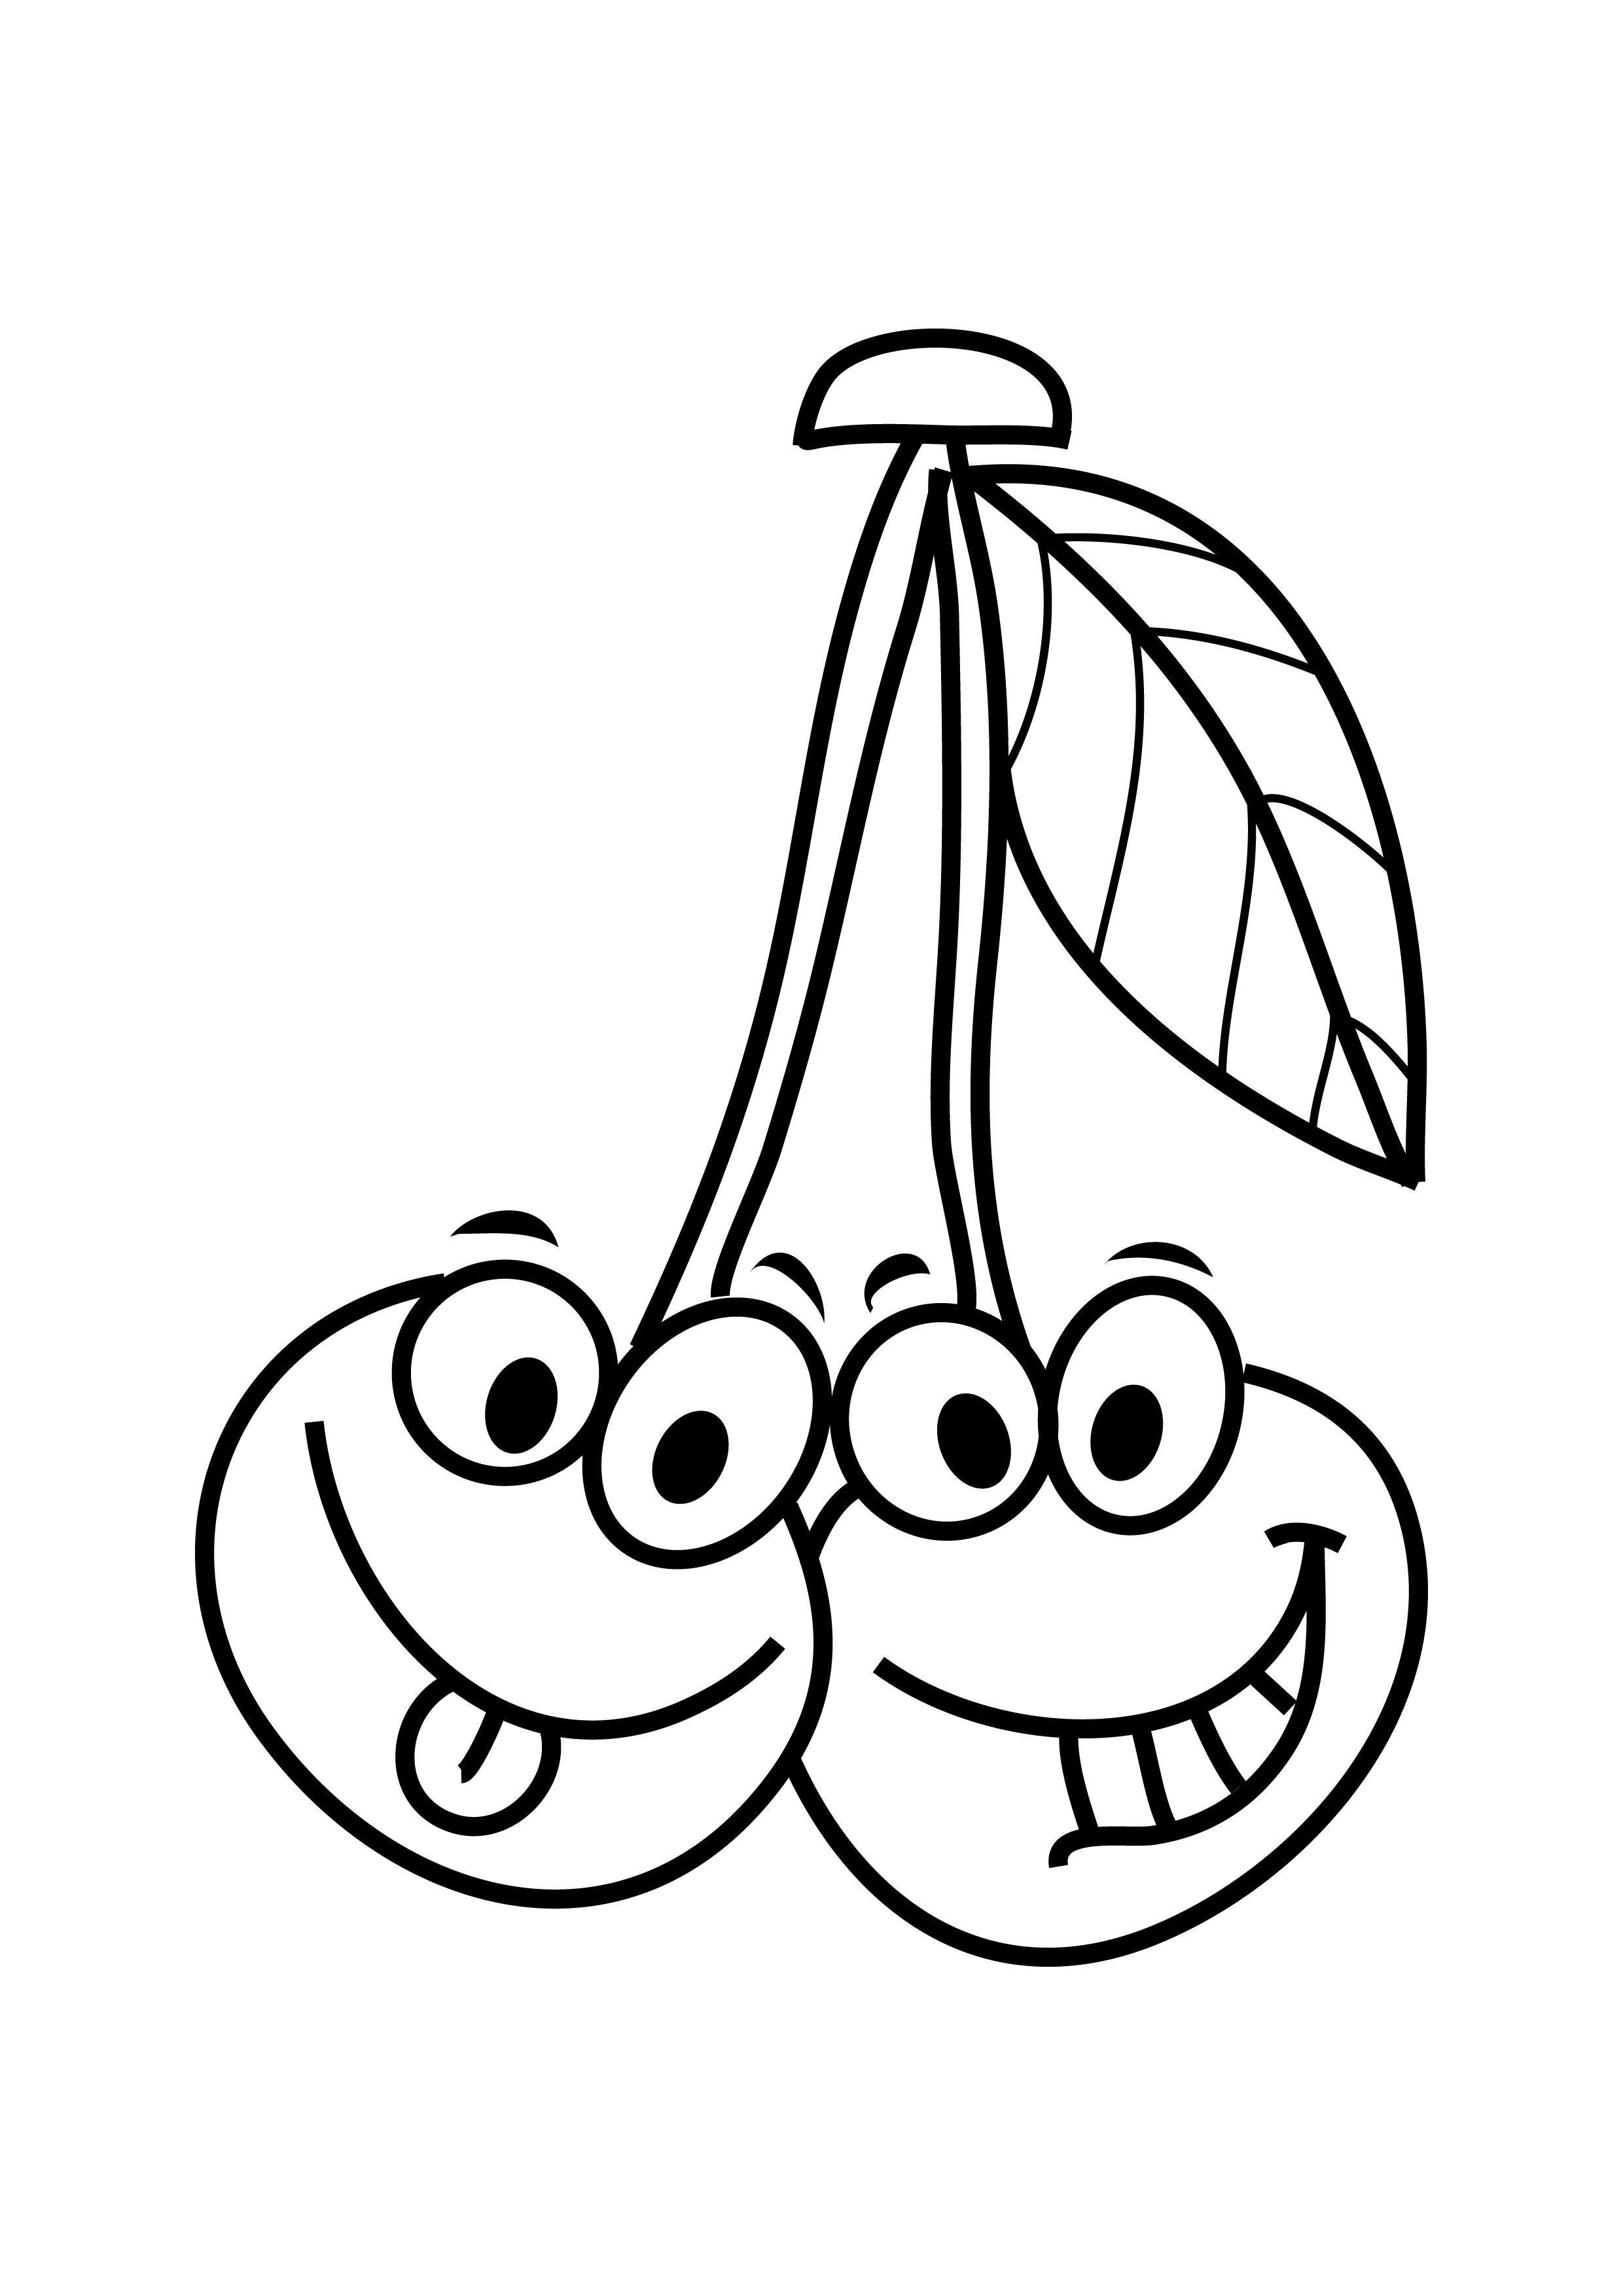 smart fruits and vegetables coloring pages crafts and worksheets